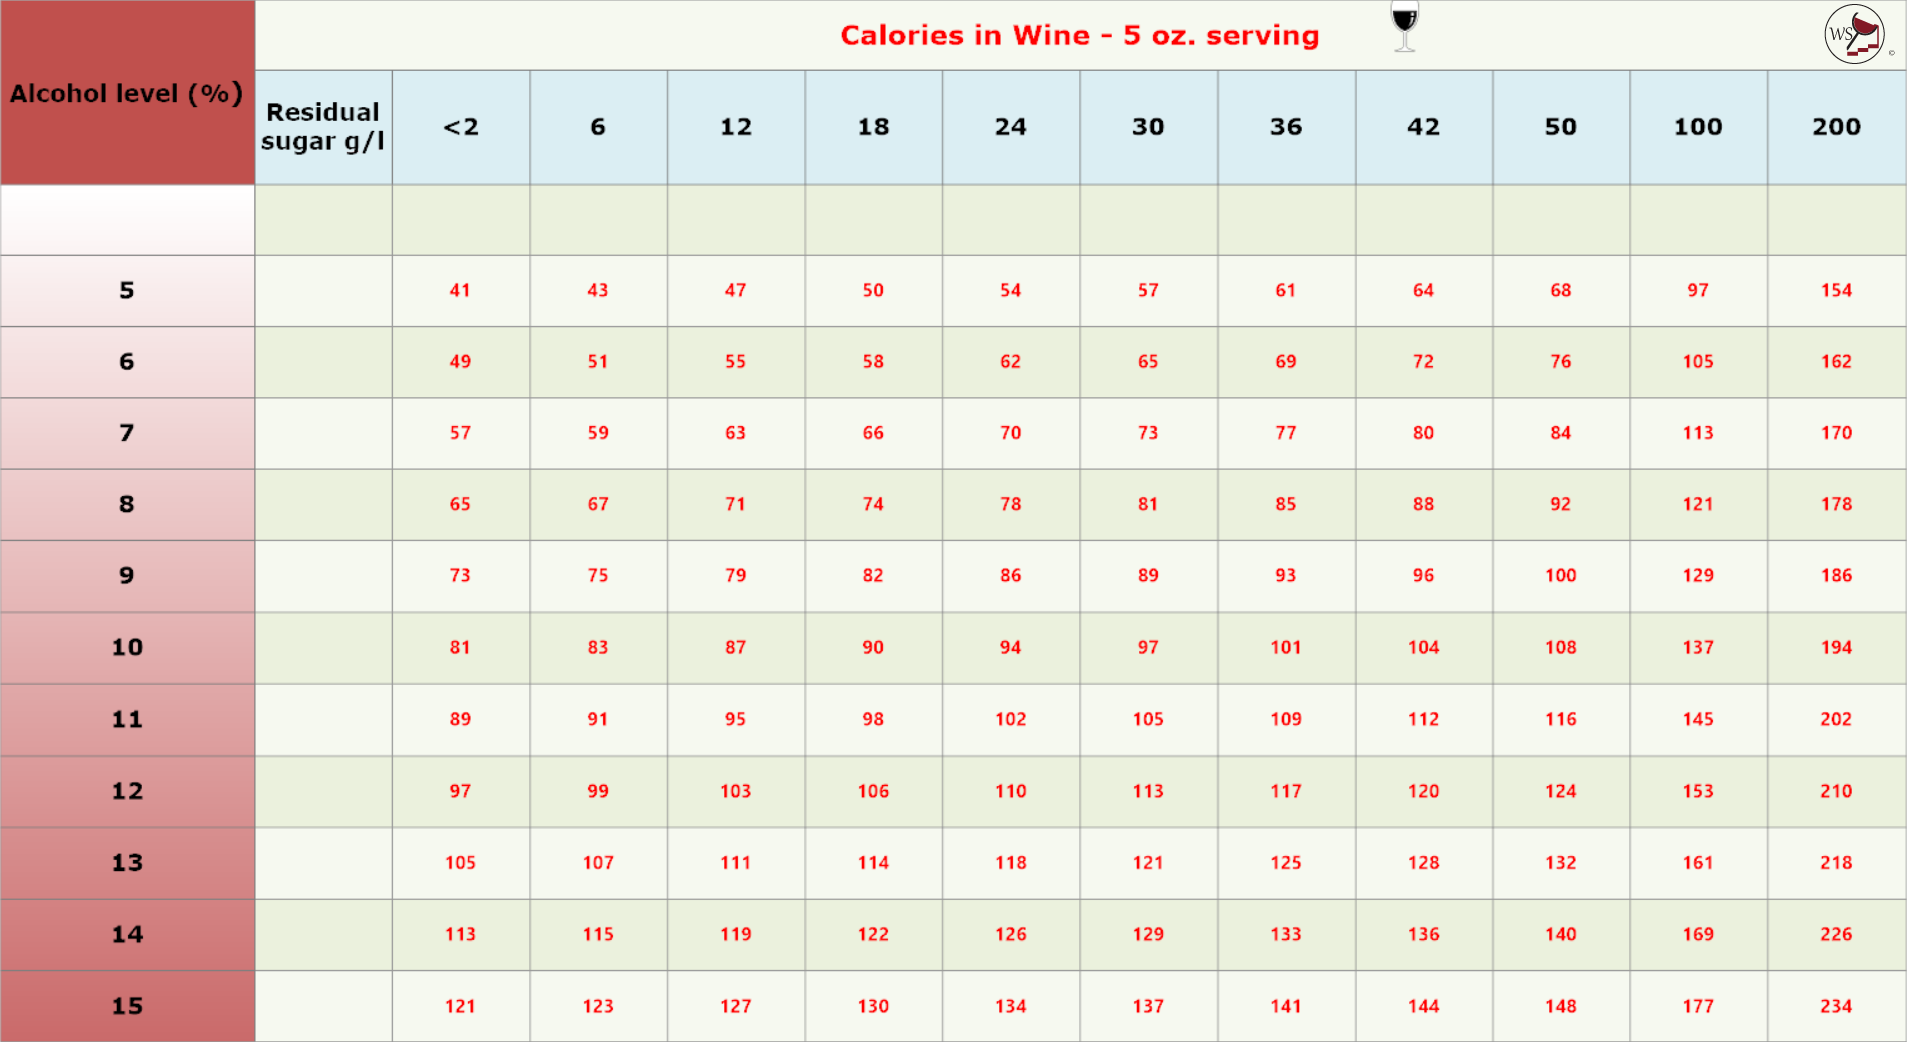 Table showing the calories in 5 ounce servings of wine.